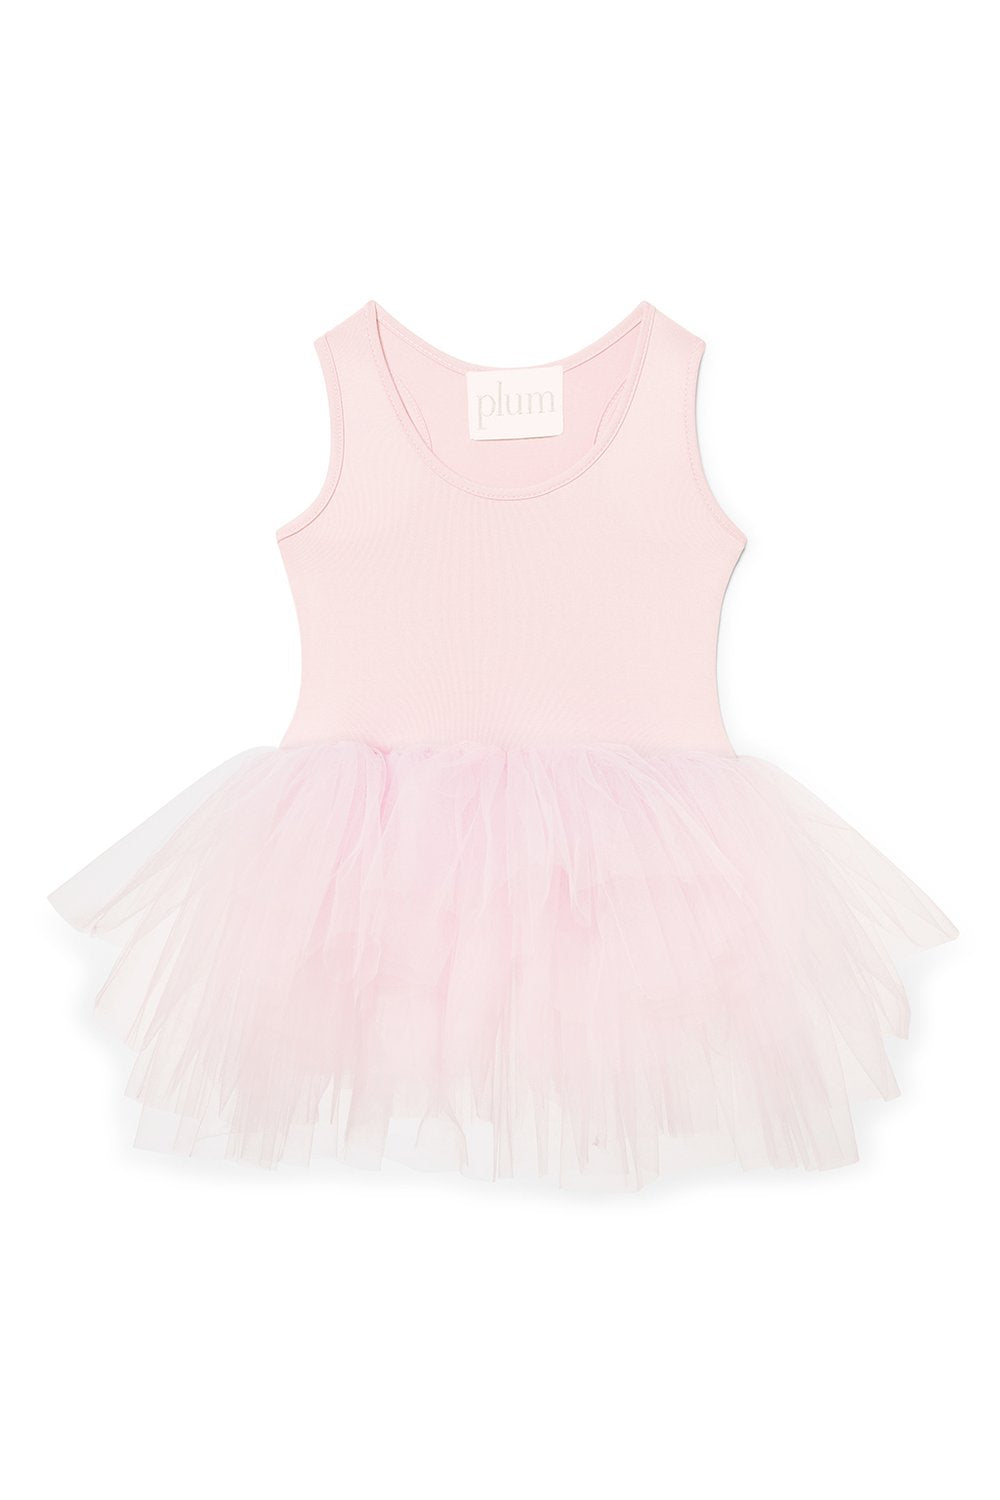 B.A.E Tutu Dress - Shirley Pink